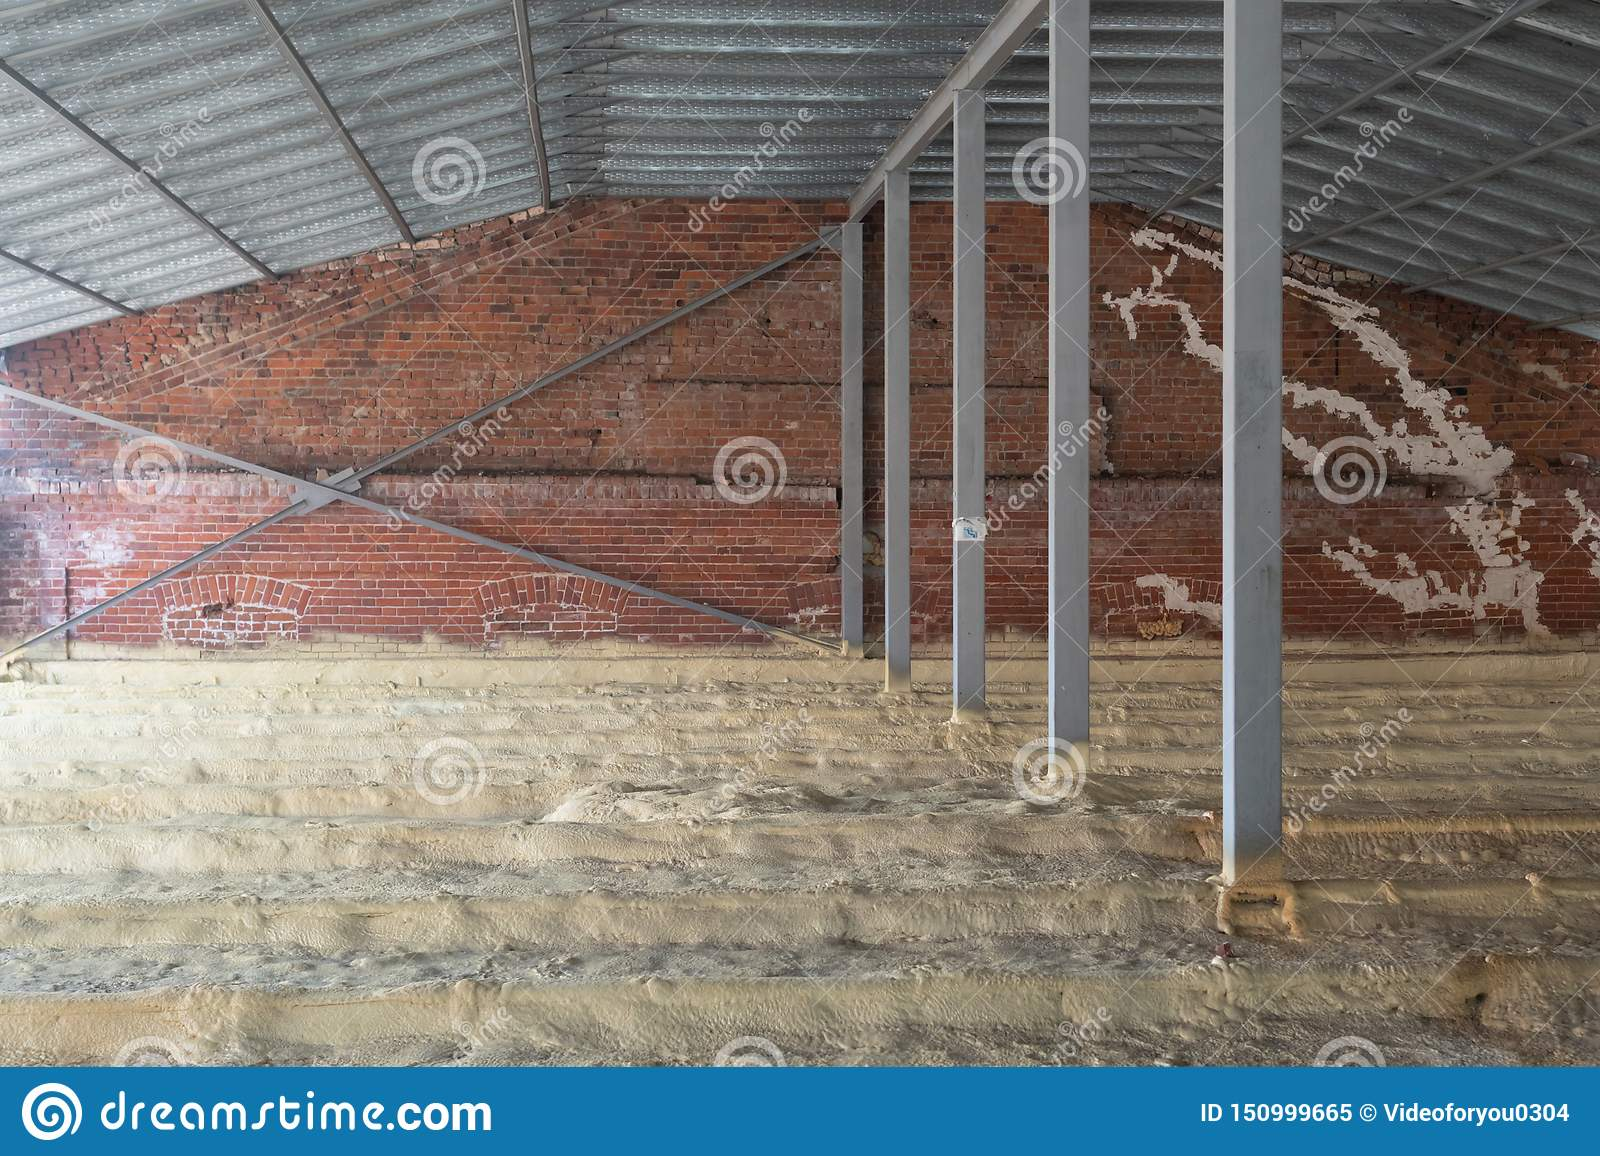 Attic of a house under construction with insulation on the floor. Pipes. Brick wall.